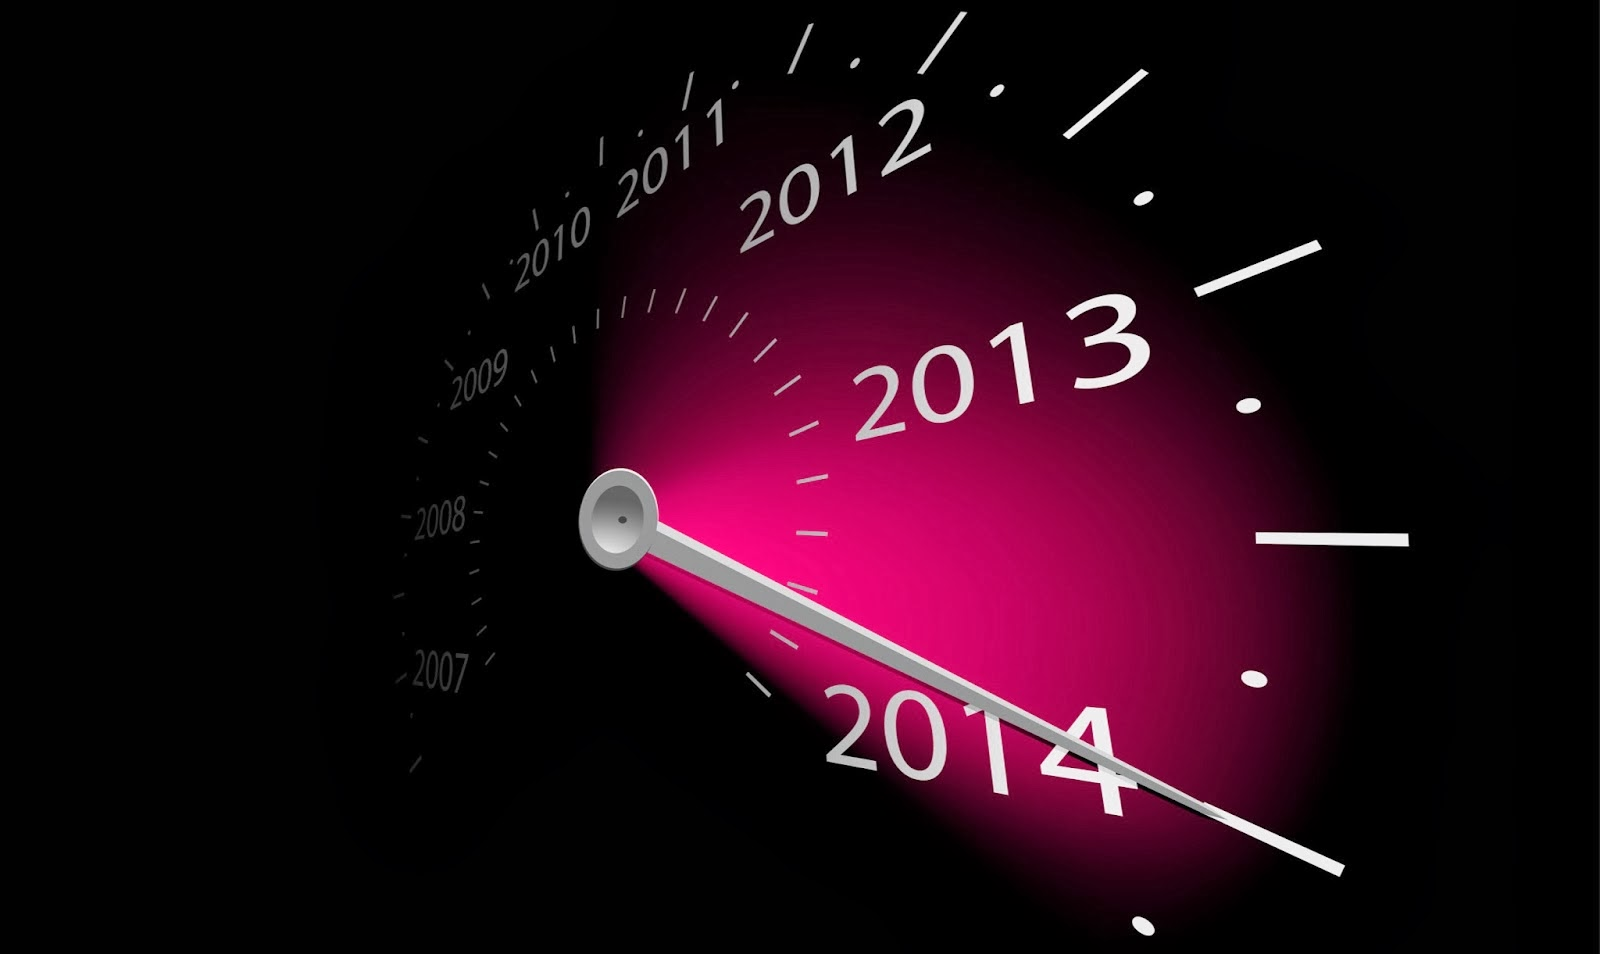 Happy new year 2014 wallpaper collection free download hd new year wallpaper hd voltagebd Images